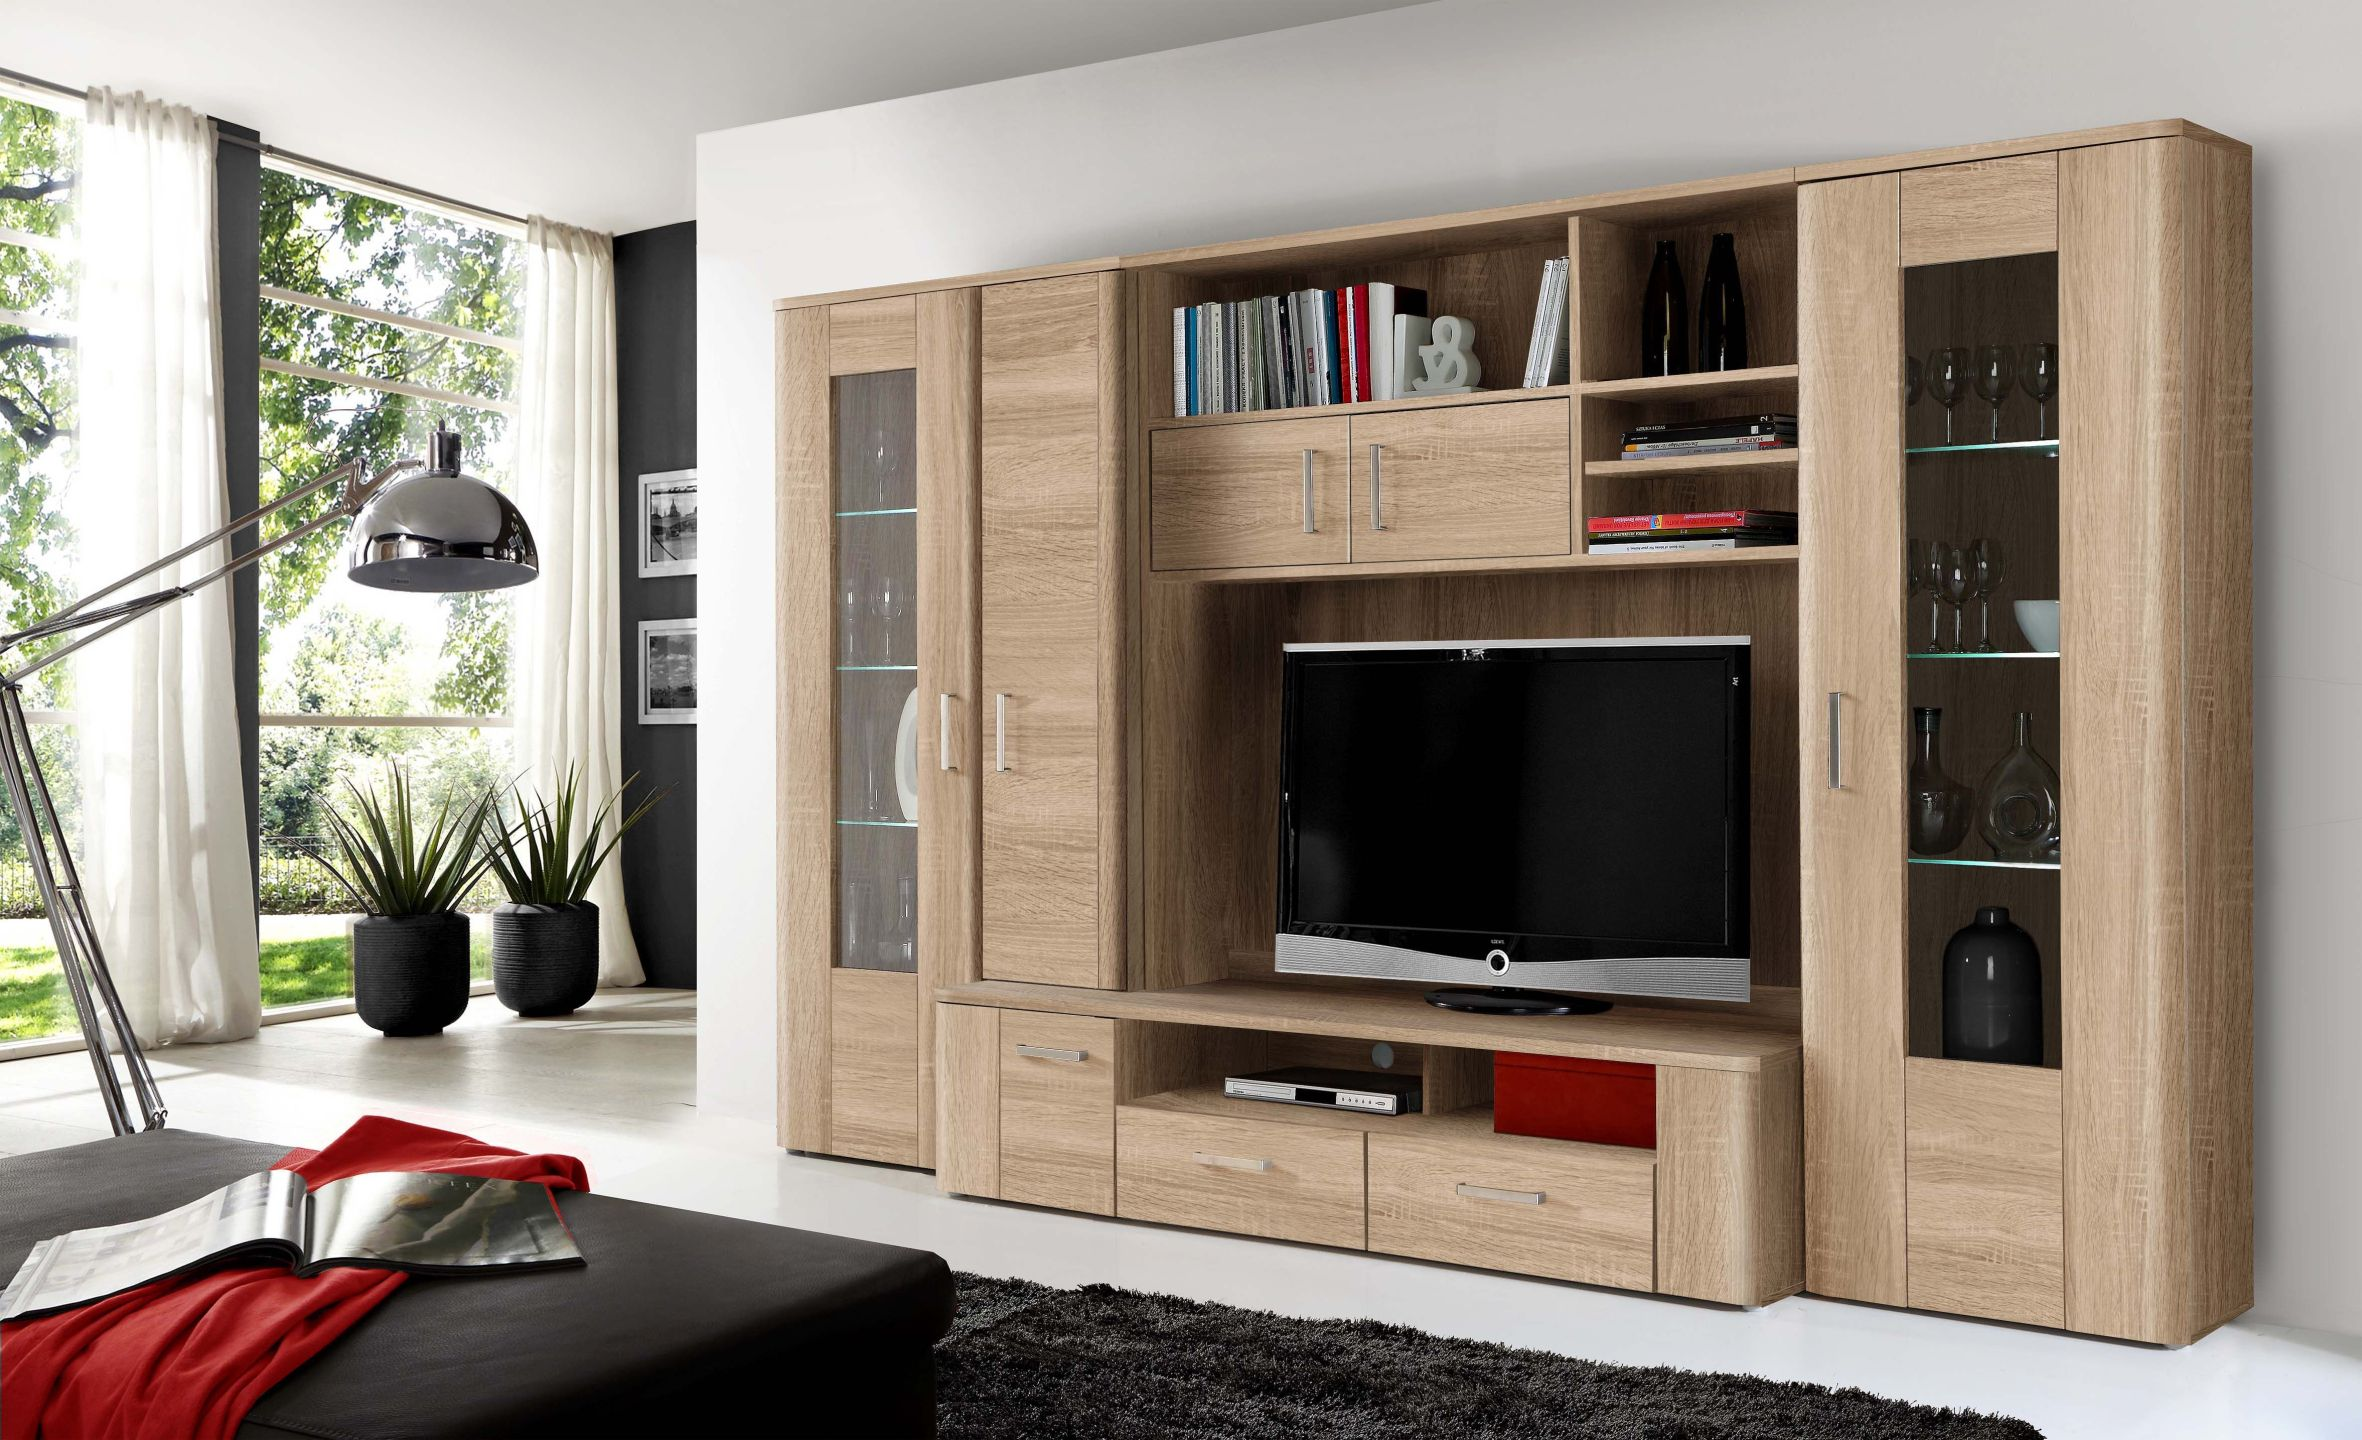 mediacenter wohnwand inkl led beleuchtung belmondo von forte sonoma eiche. Black Bedroom Furniture Sets. Home Design Ideas